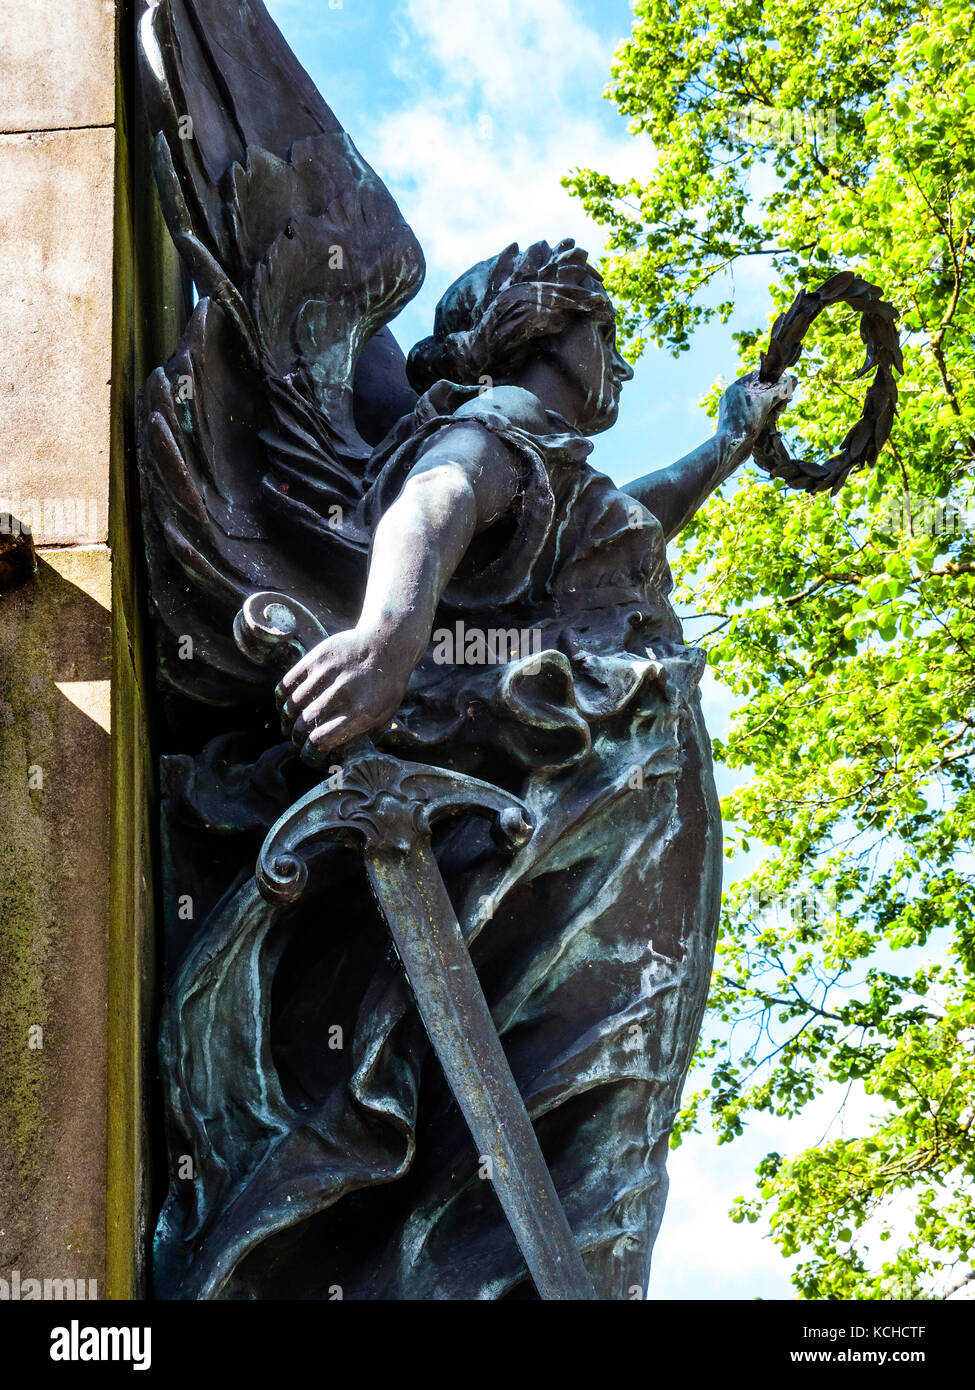 LF Roslyn's Sculpture, detail, War Memorial, The Slopes, Buxton, Derbyshire - Stock Image